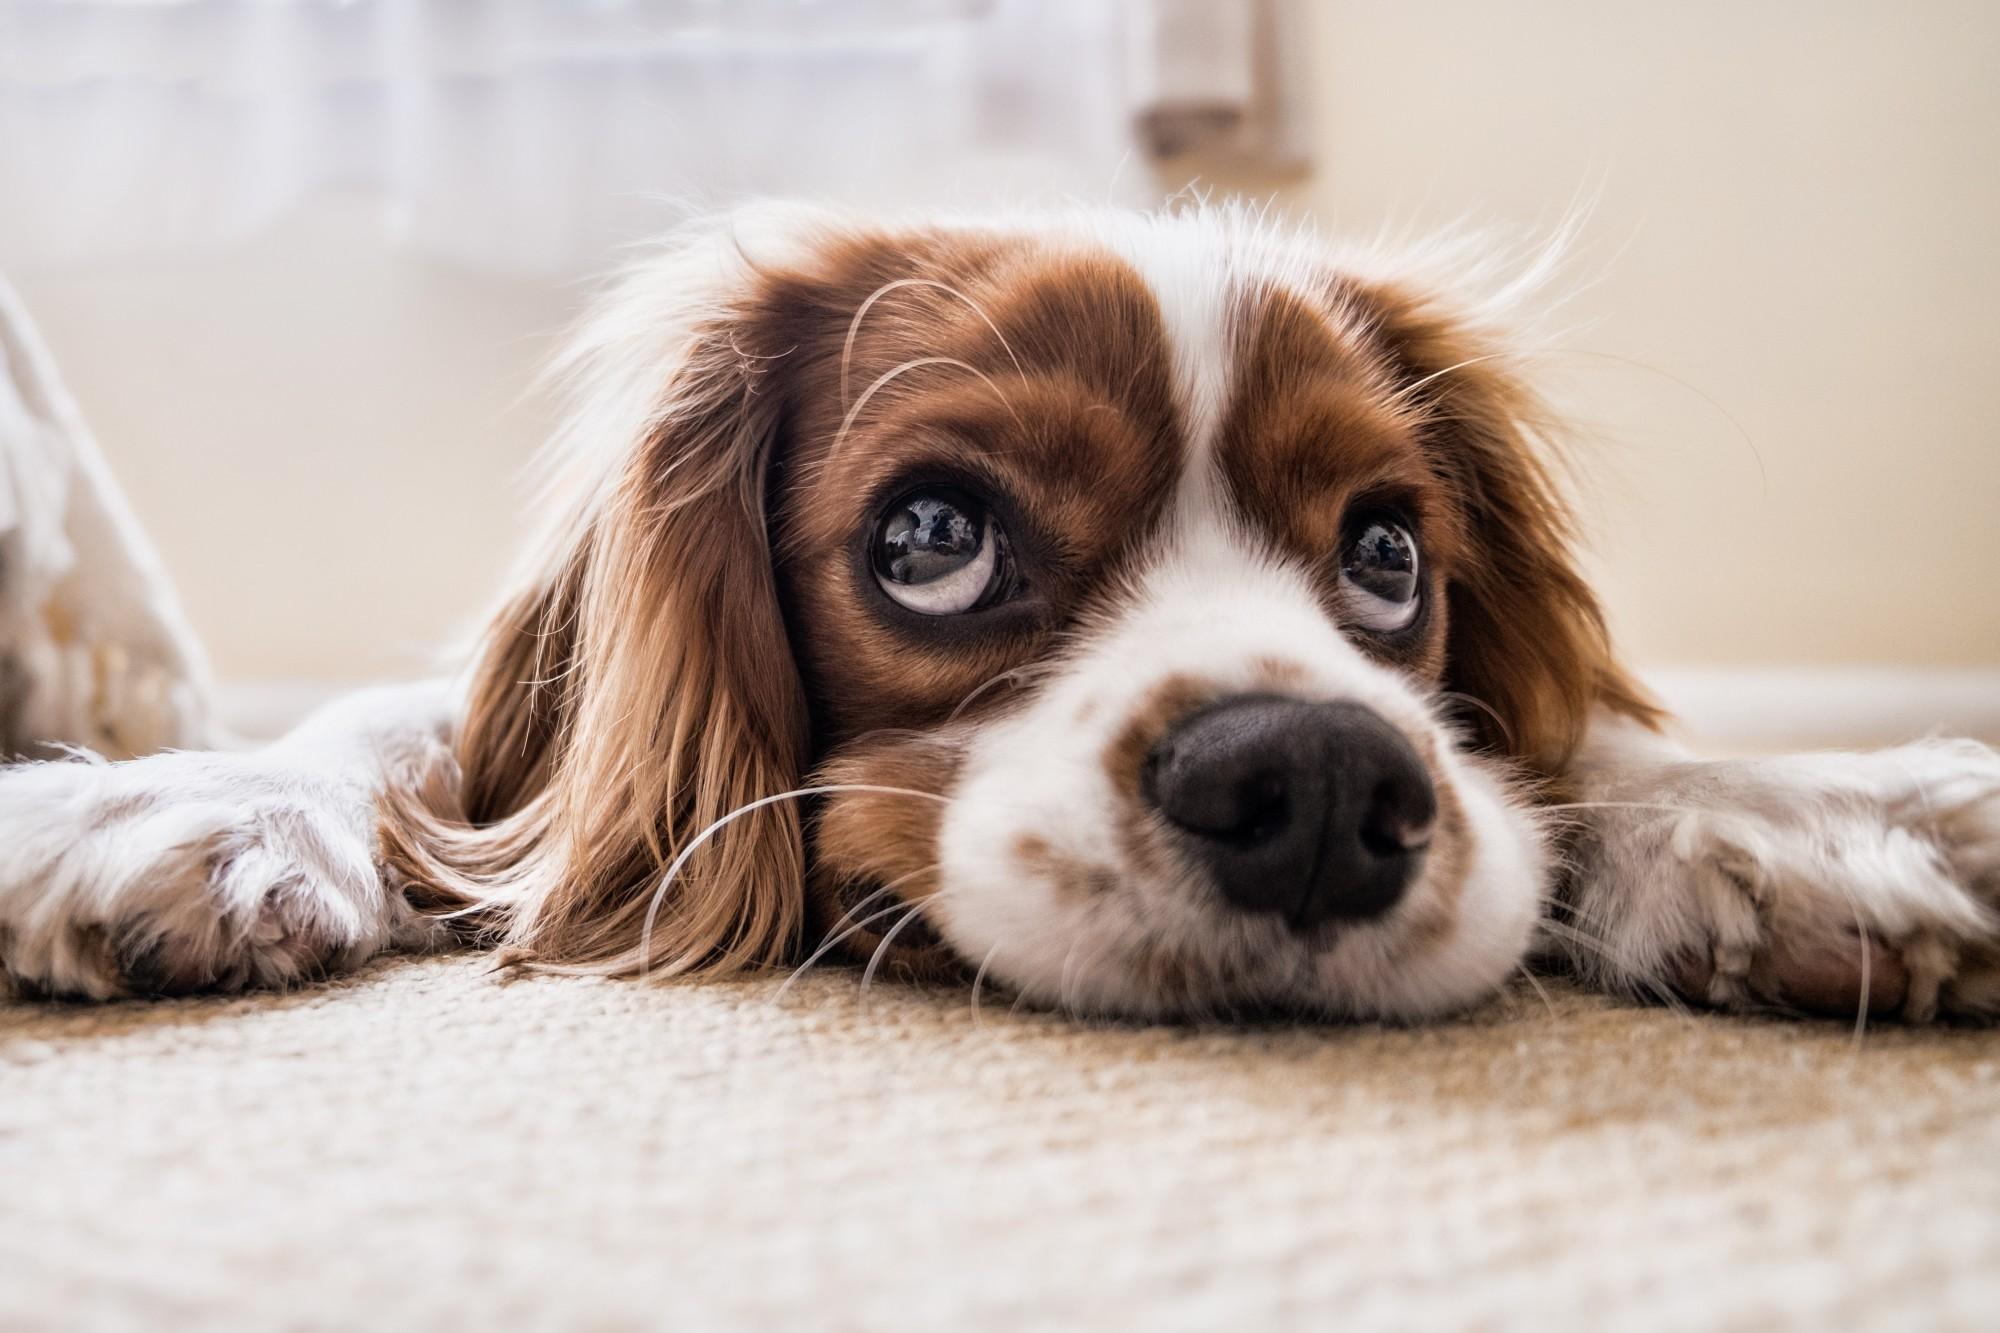 Pet Help: 5 Key Ways to Control Pet Stress and Anxiety